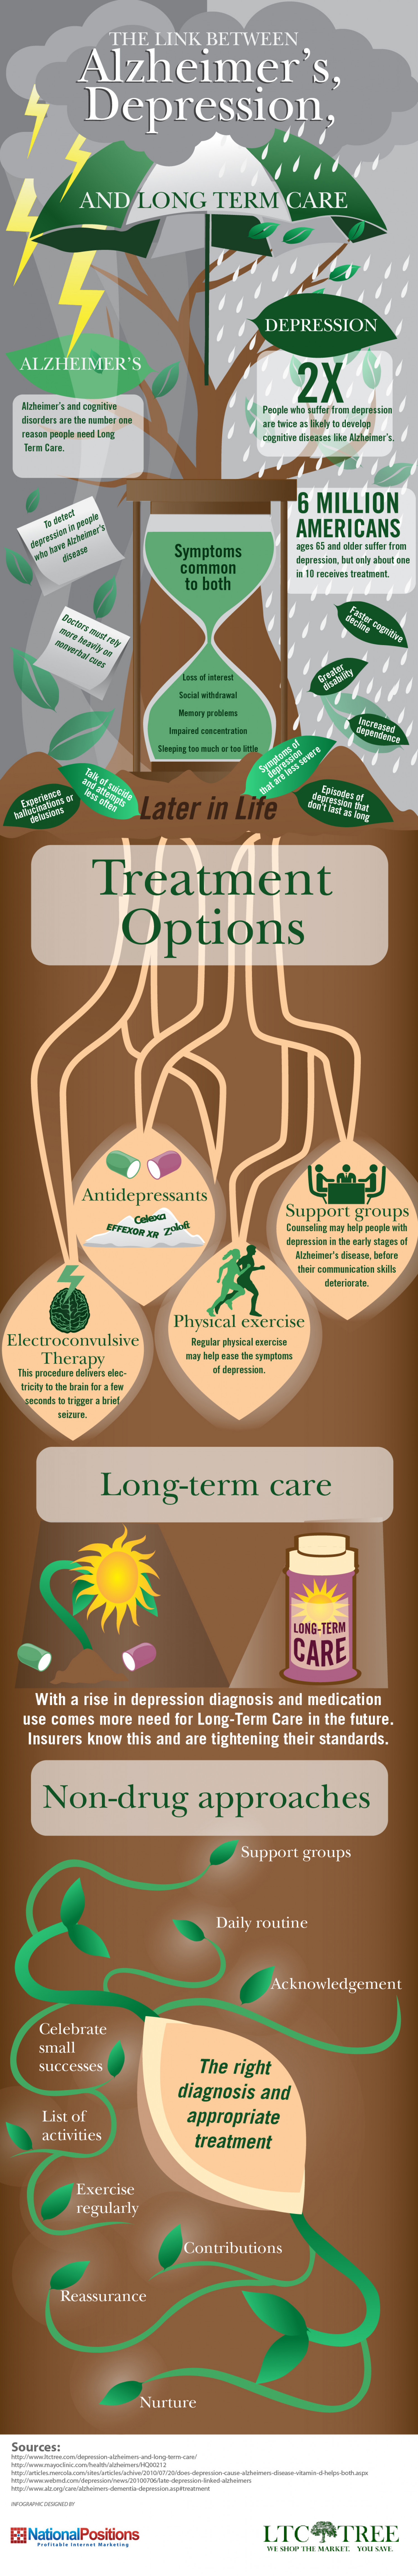 Alzheimer's & Long Term Care Infographic